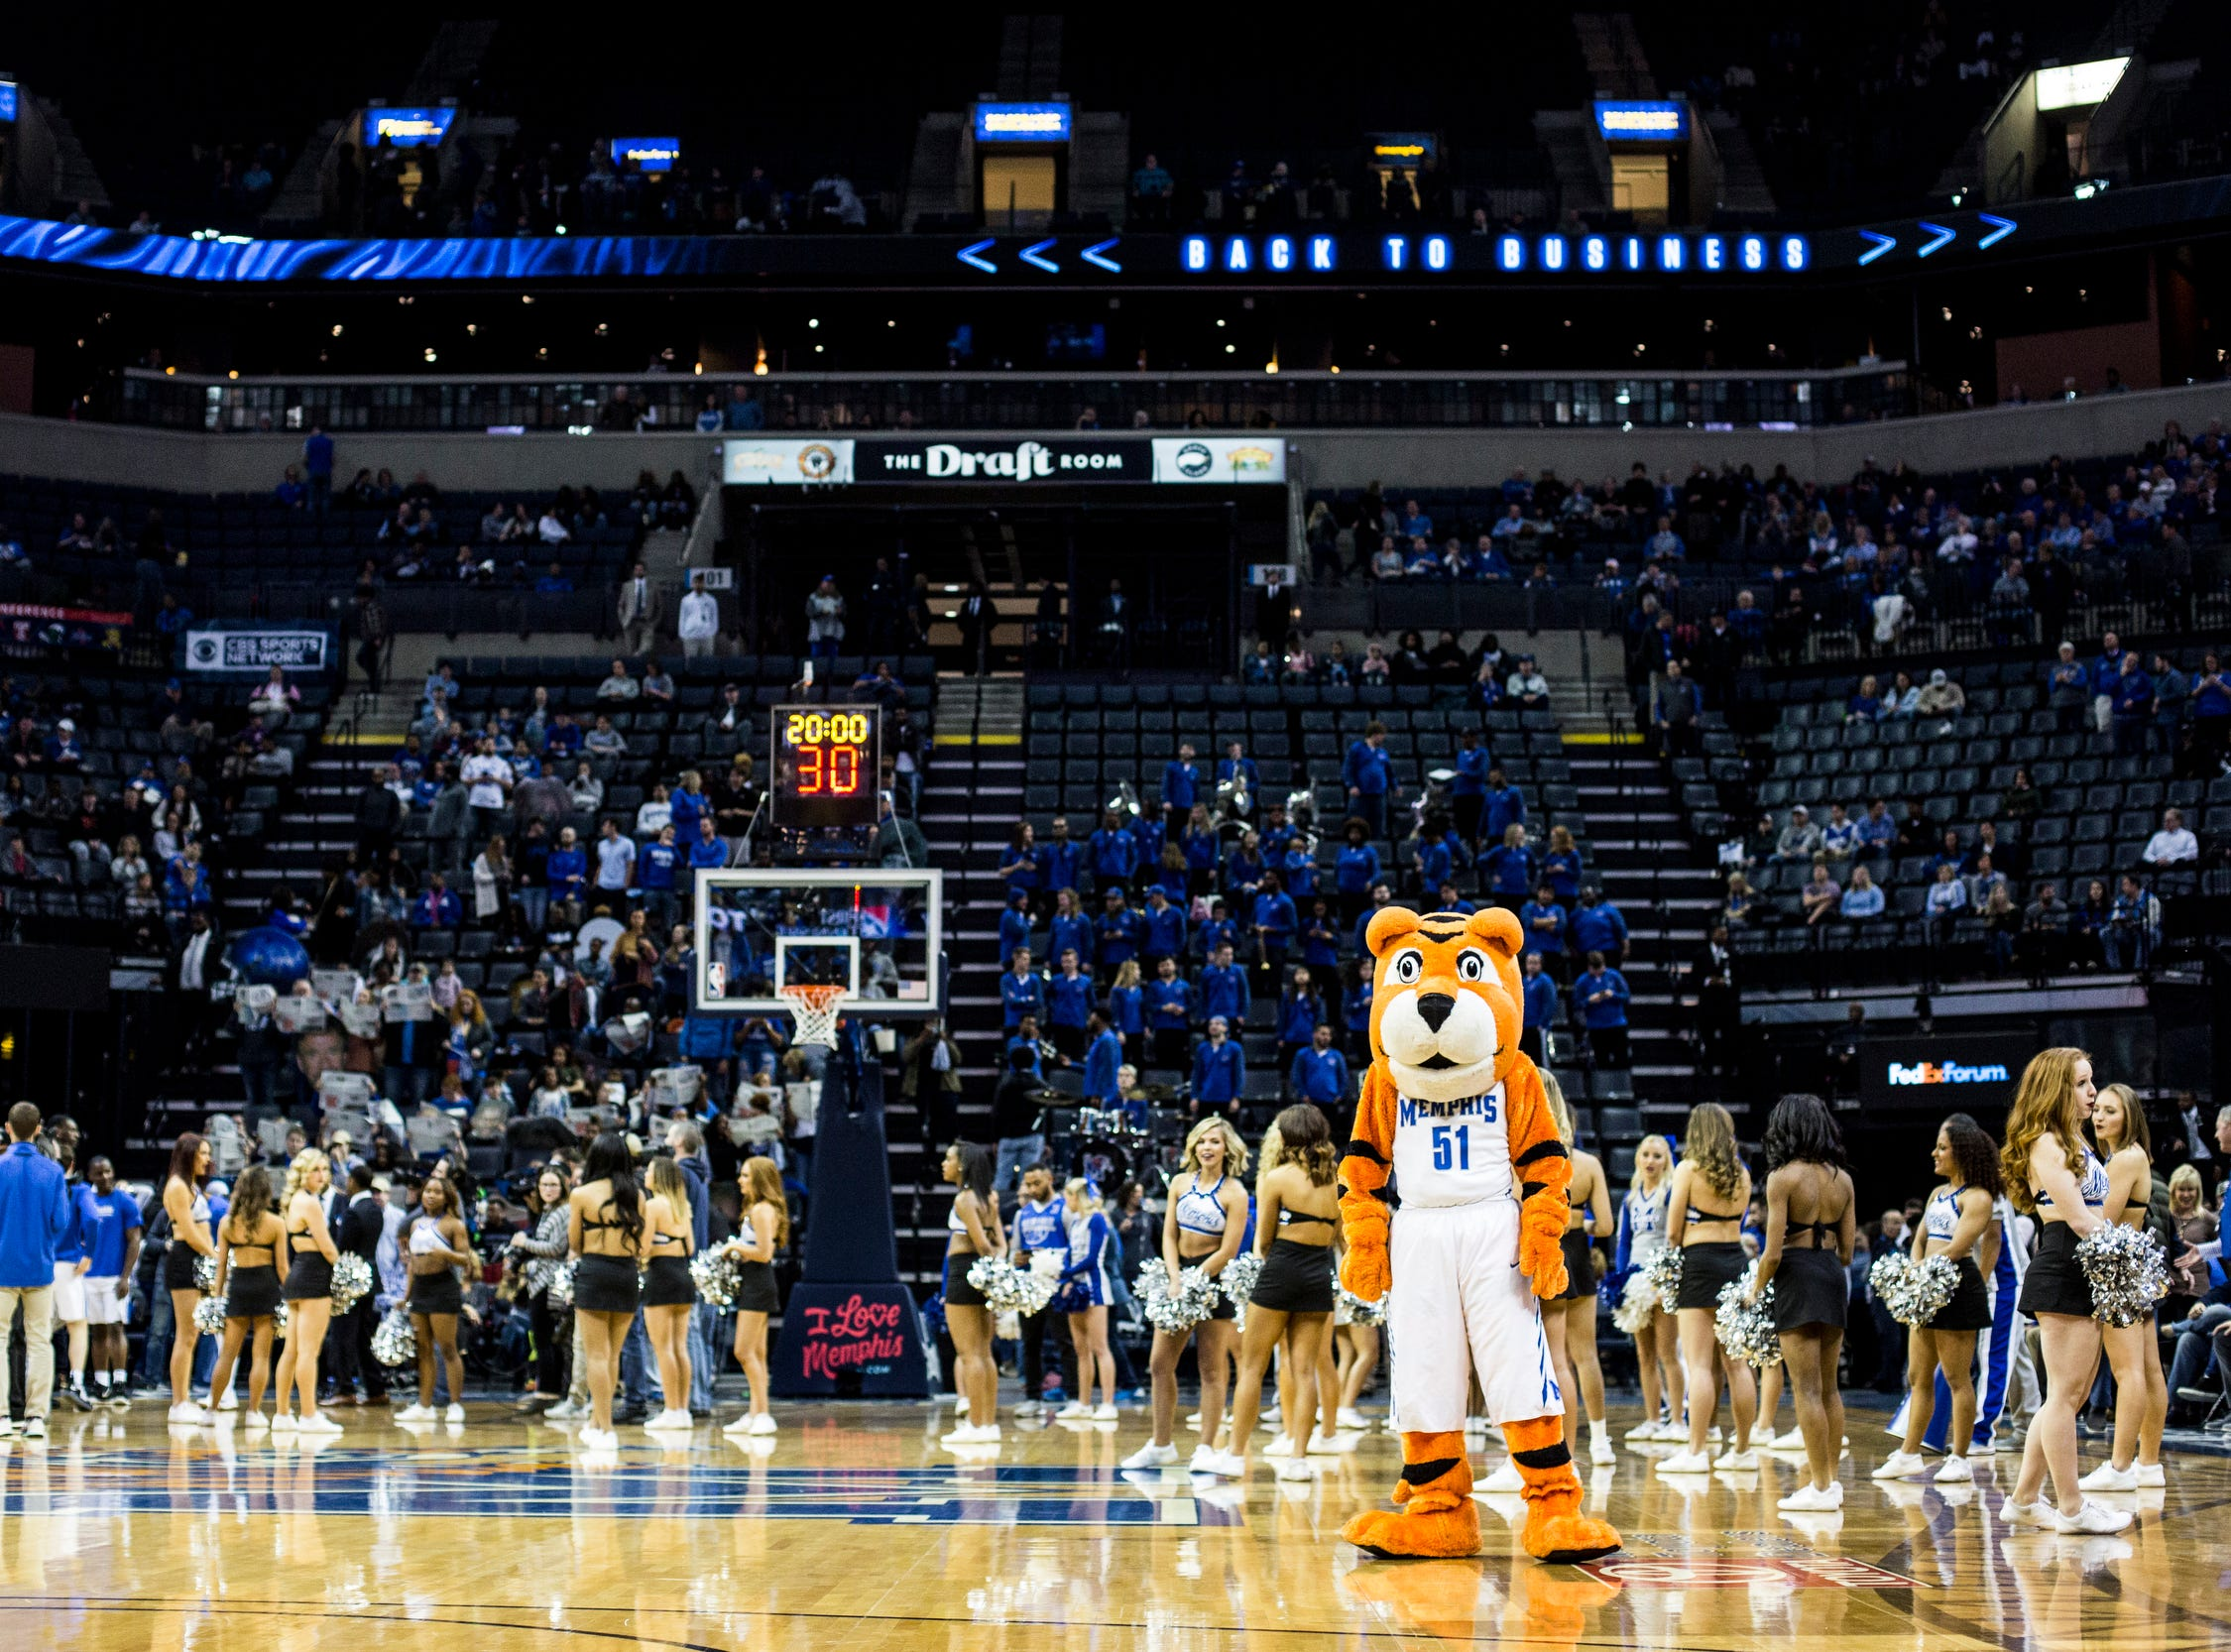 February 10, 2019 - Pouncer is seen before the start of Sunday's game versus Connecticut at the FedExForum.